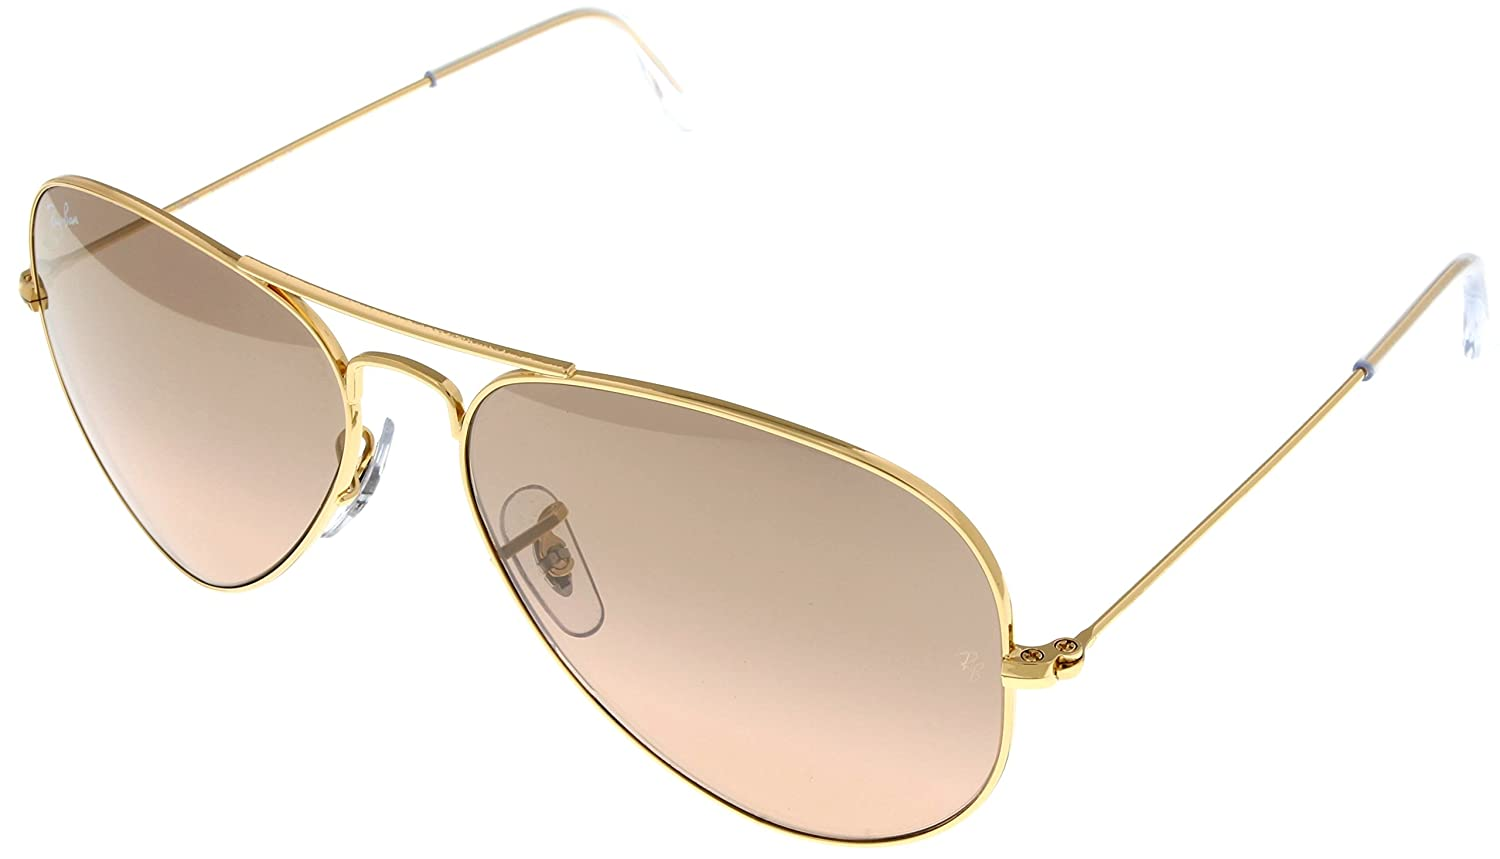 f402dbf9f8 Amazon.com: Ray Ban Sunglasses Aviator Gold Womens RB3025 001/3E: Clothing